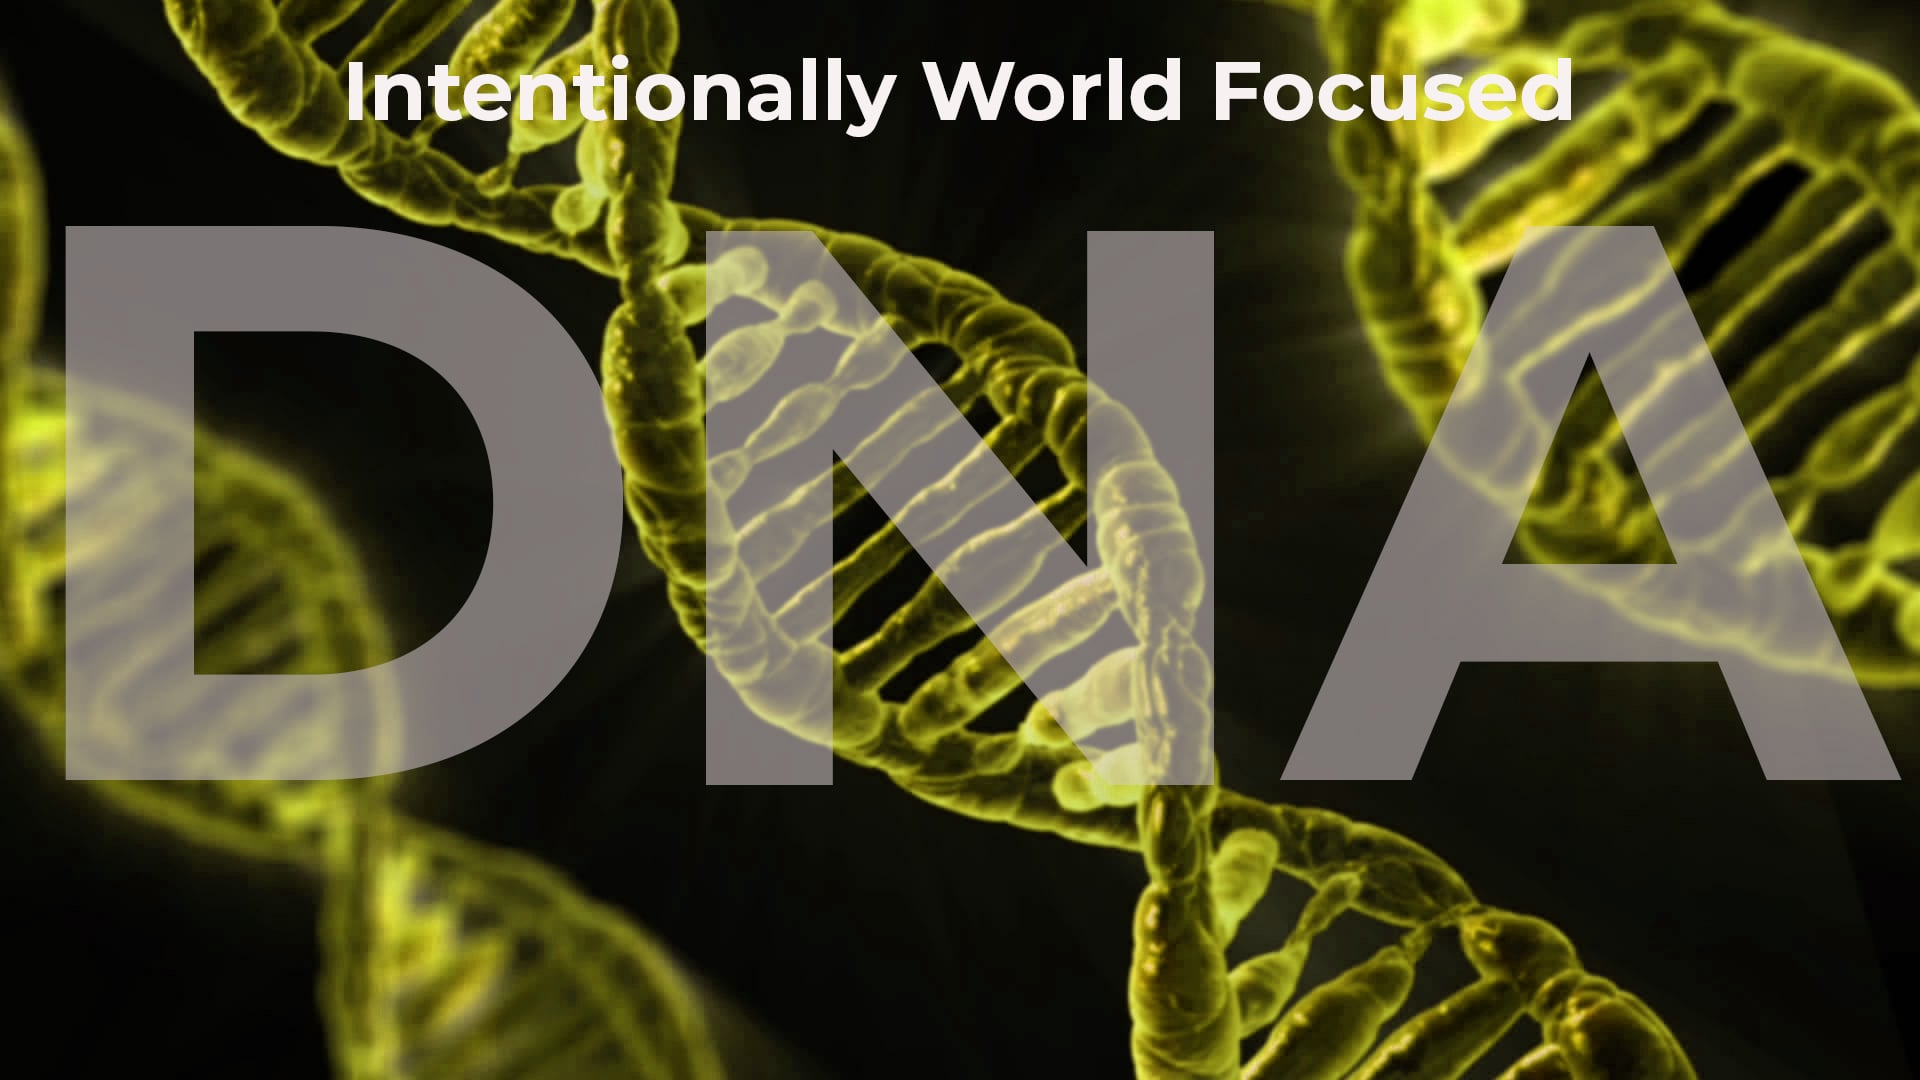 DNA - Intentionally World-Focused